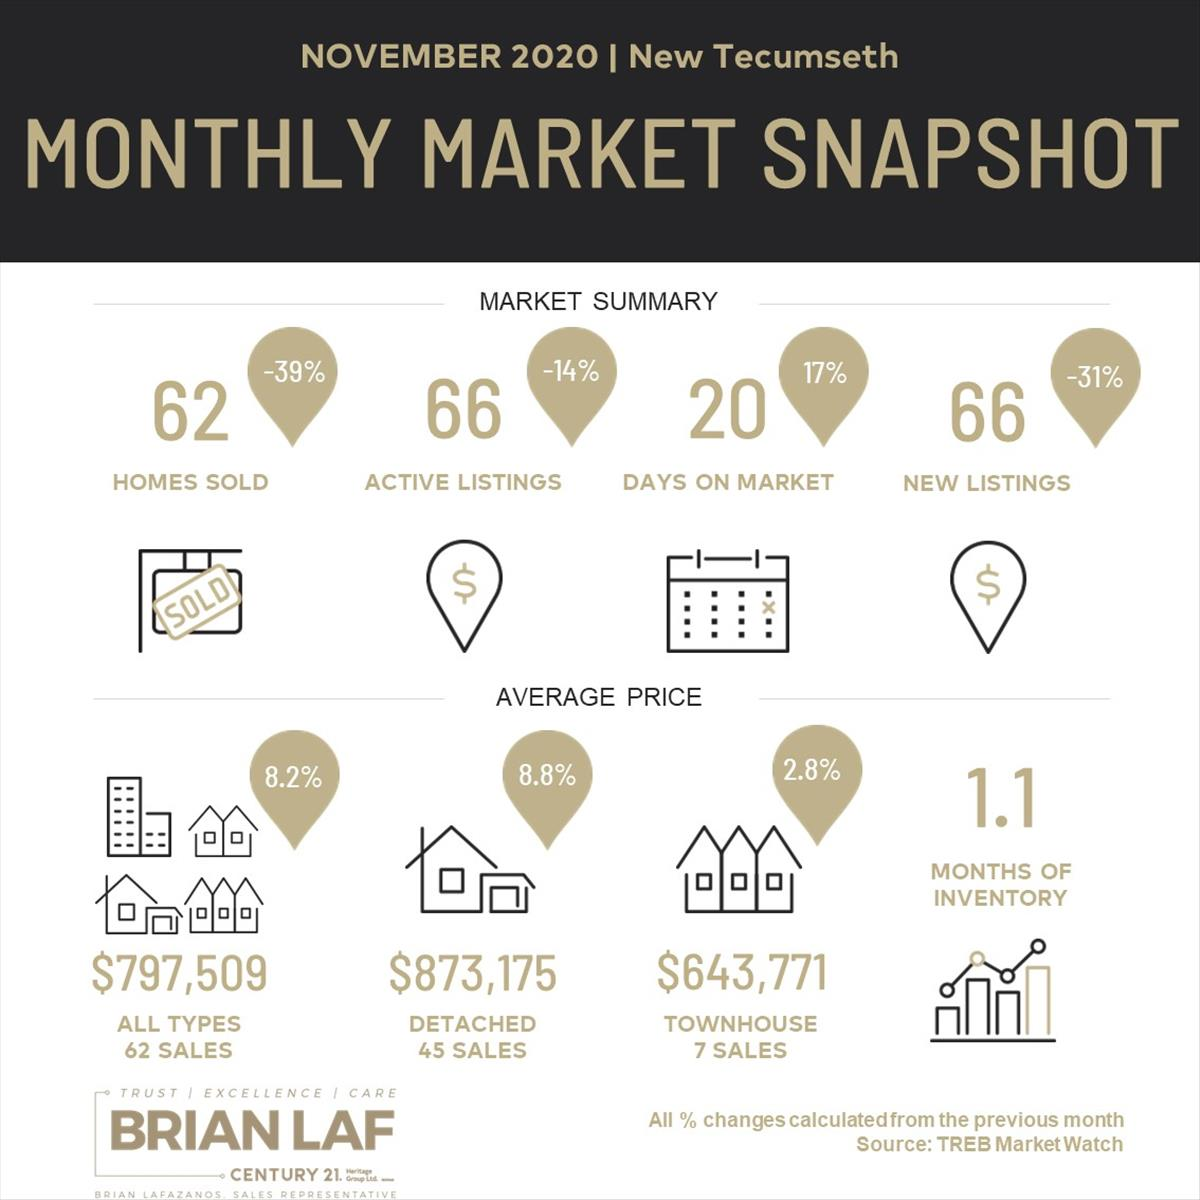 New Tecumseth Monthly Market Update - November, 2020